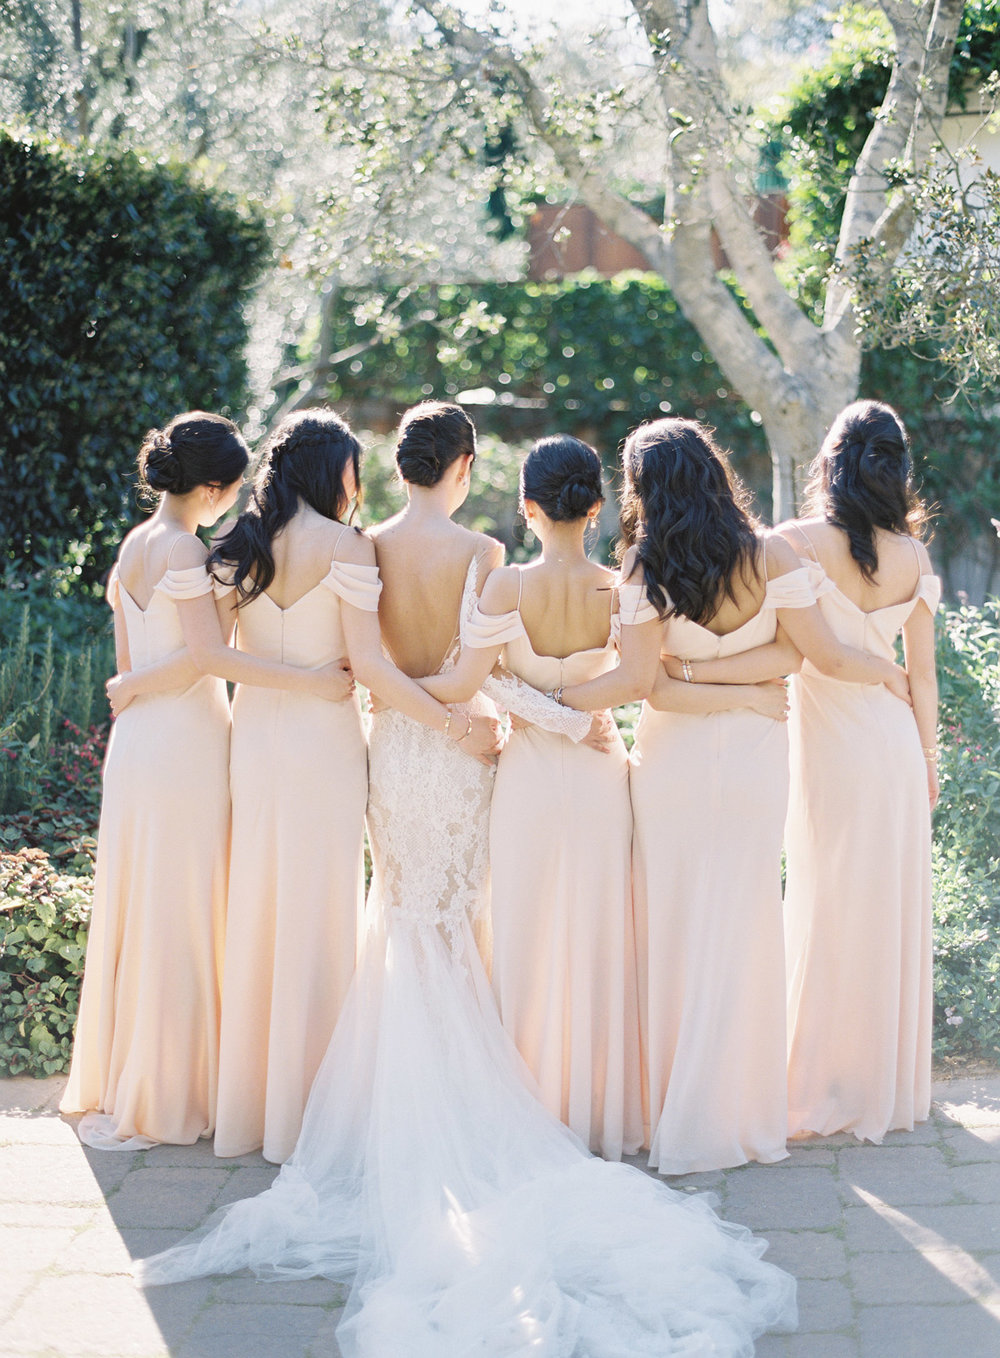 EventoftheSeason_KurtBoomerPhotography_SantaBarbaraWedding_SanYsidroRanch (55).jpg